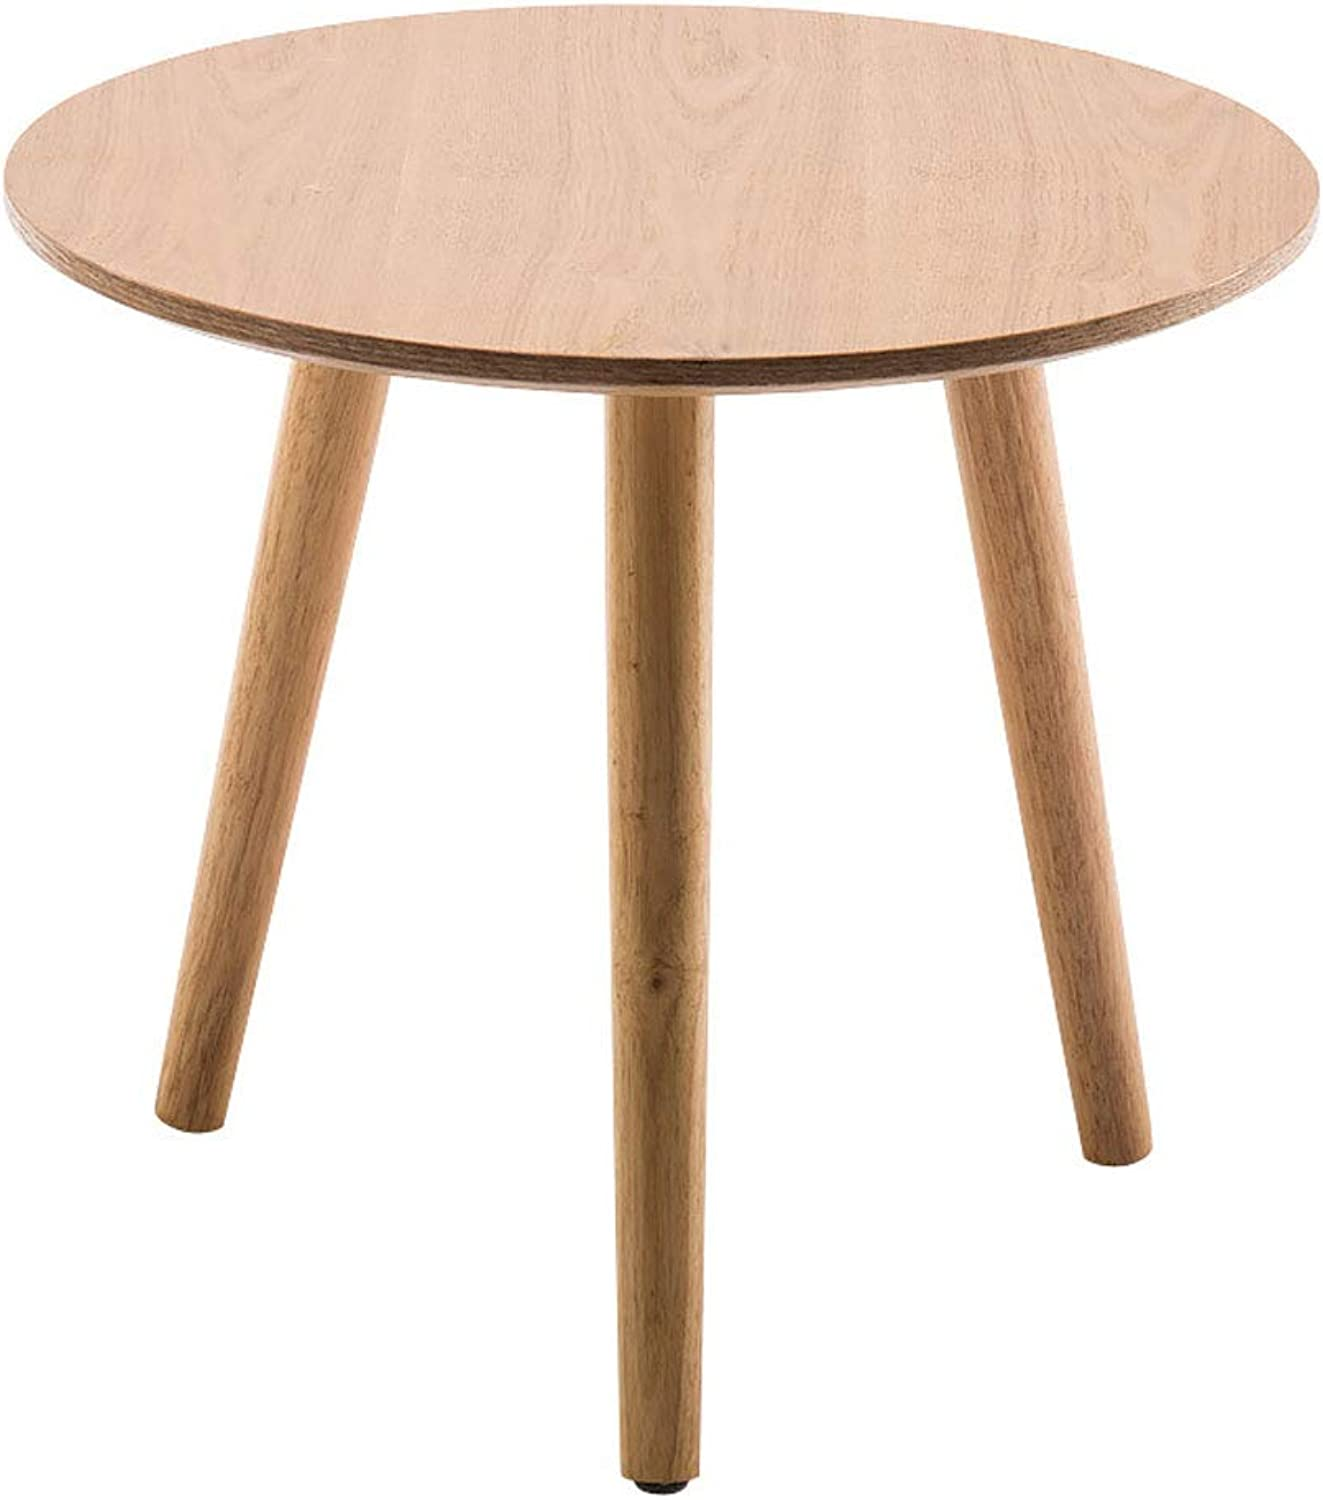 T-Day End Tables Bedside Table Side Table Nordic Wood Fashion Simple Small Coffee Table Rounded Small Apartment Modern Coffee Table